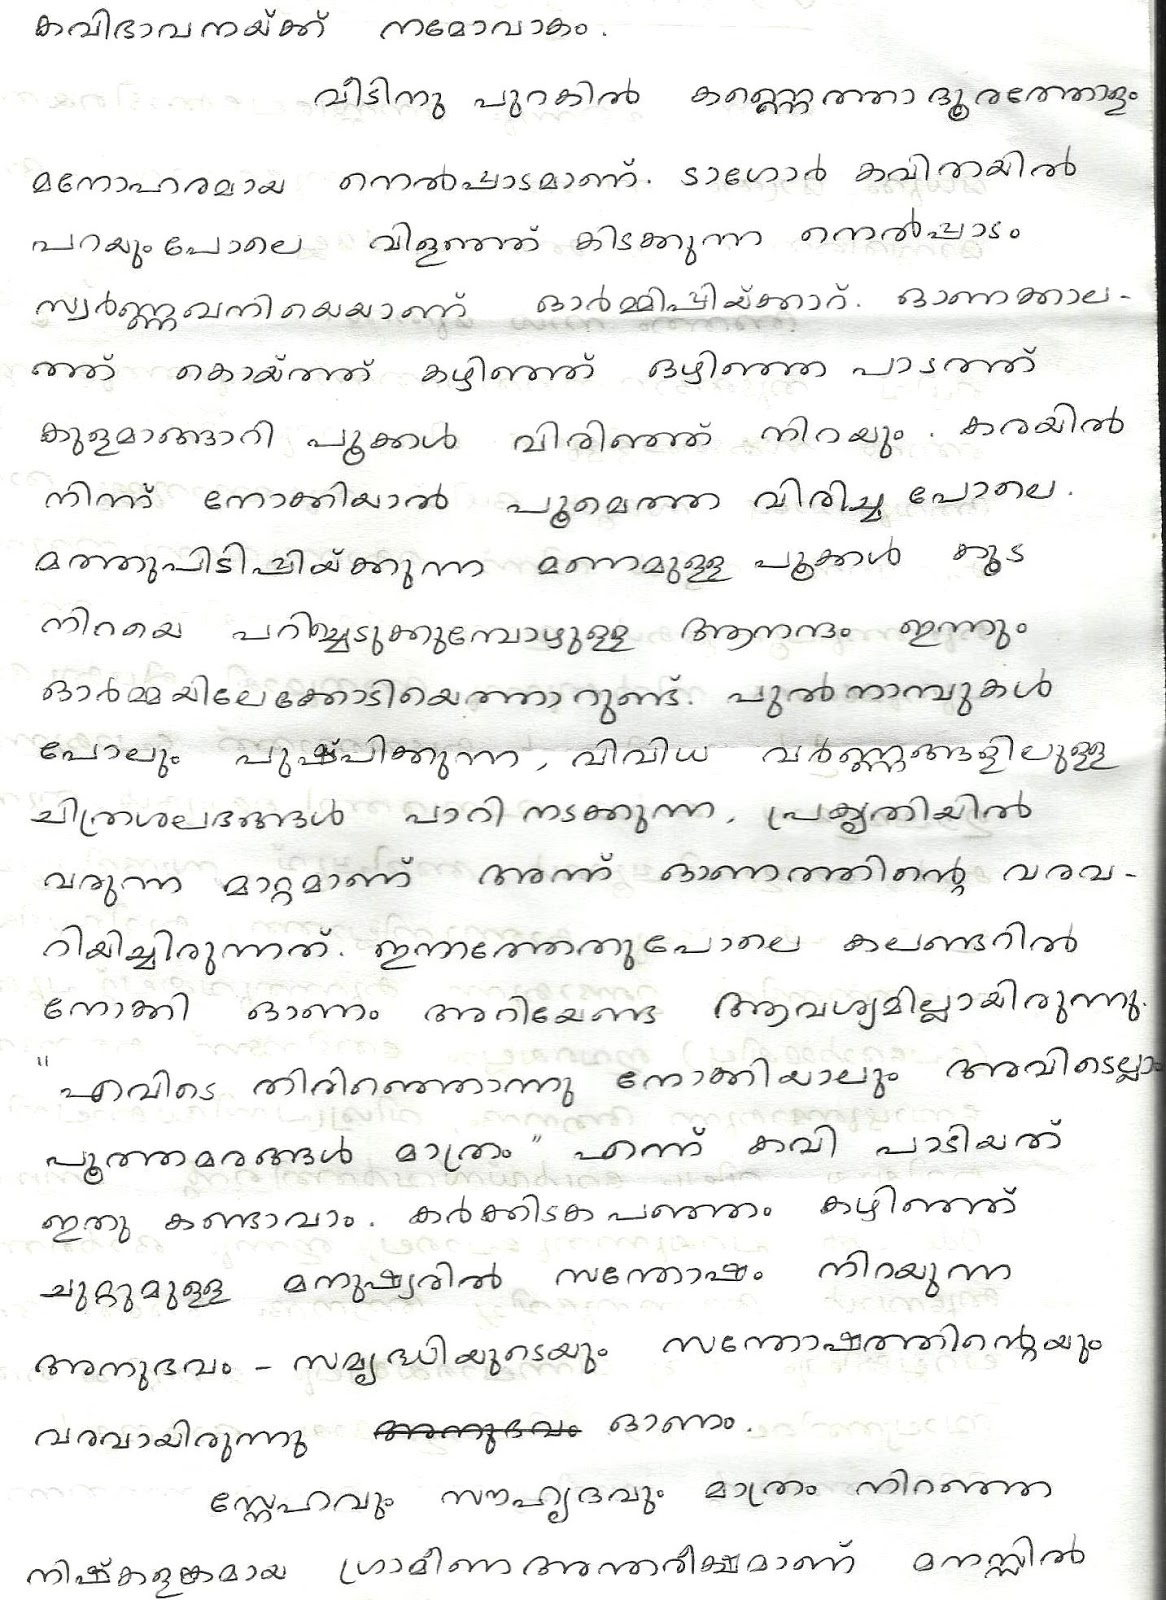 009 Onam2 Essay Example Childhood Unique Memories Paragraph Introduction For Students Full